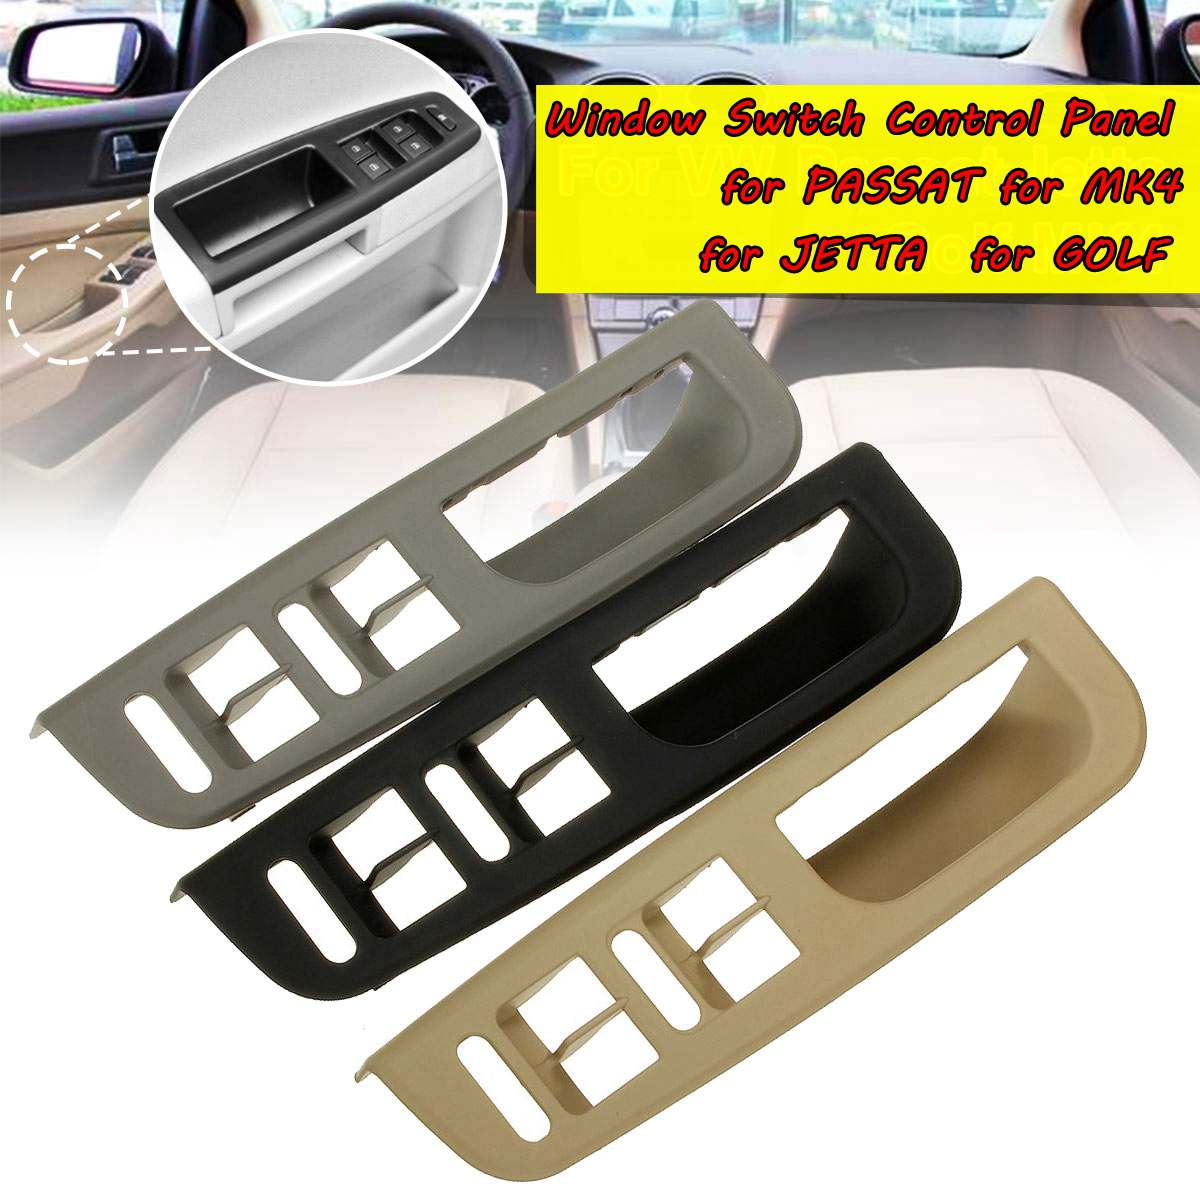 Car-styling New Black Master Window Switch Control Panel Trim Bezel For VW For Passat For Jetta For Golf For MK4